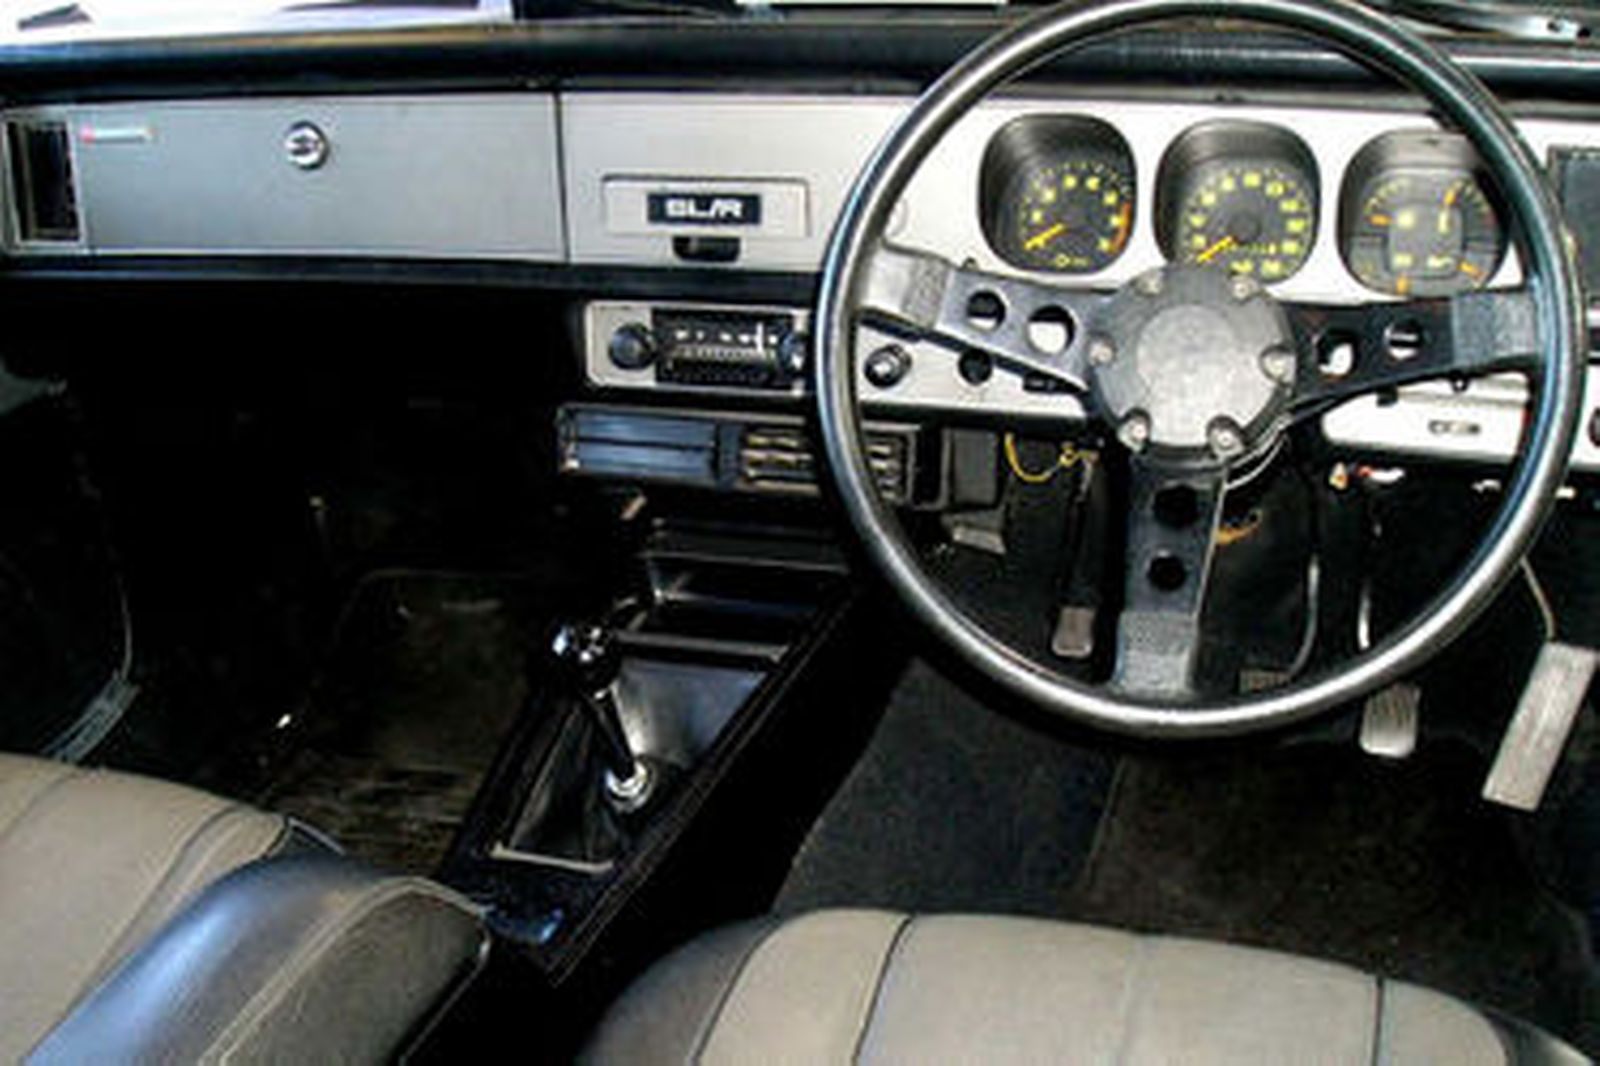 wiring diagram for offices holden lx torana a9x sedan auctions lot 26 shannons  holden lx torana a9x sedan auctions lot 26 shannons